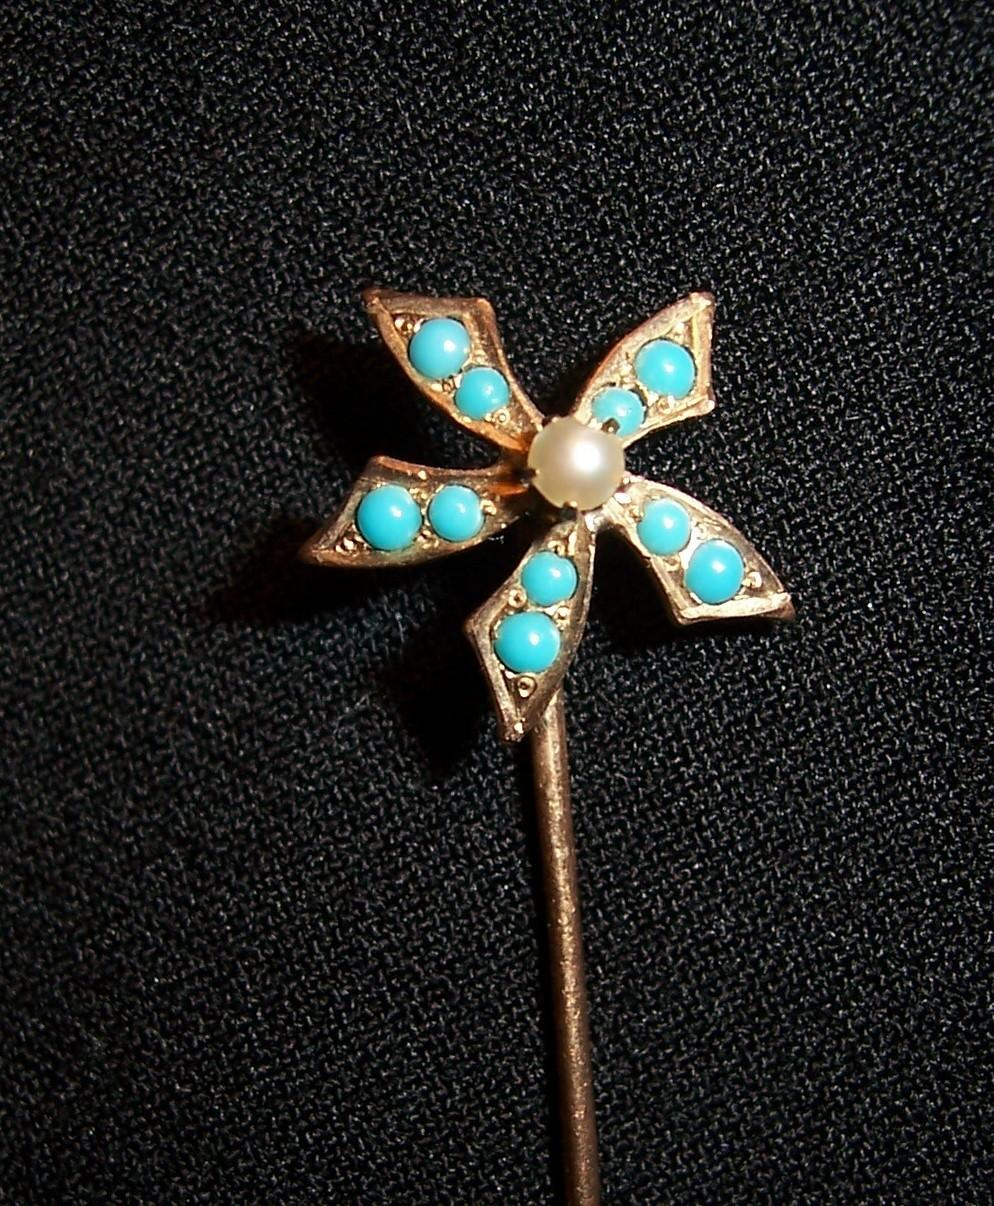 Vintage Stick Pin Turquoise colored Stones Flower Petal Design Lapel Pin